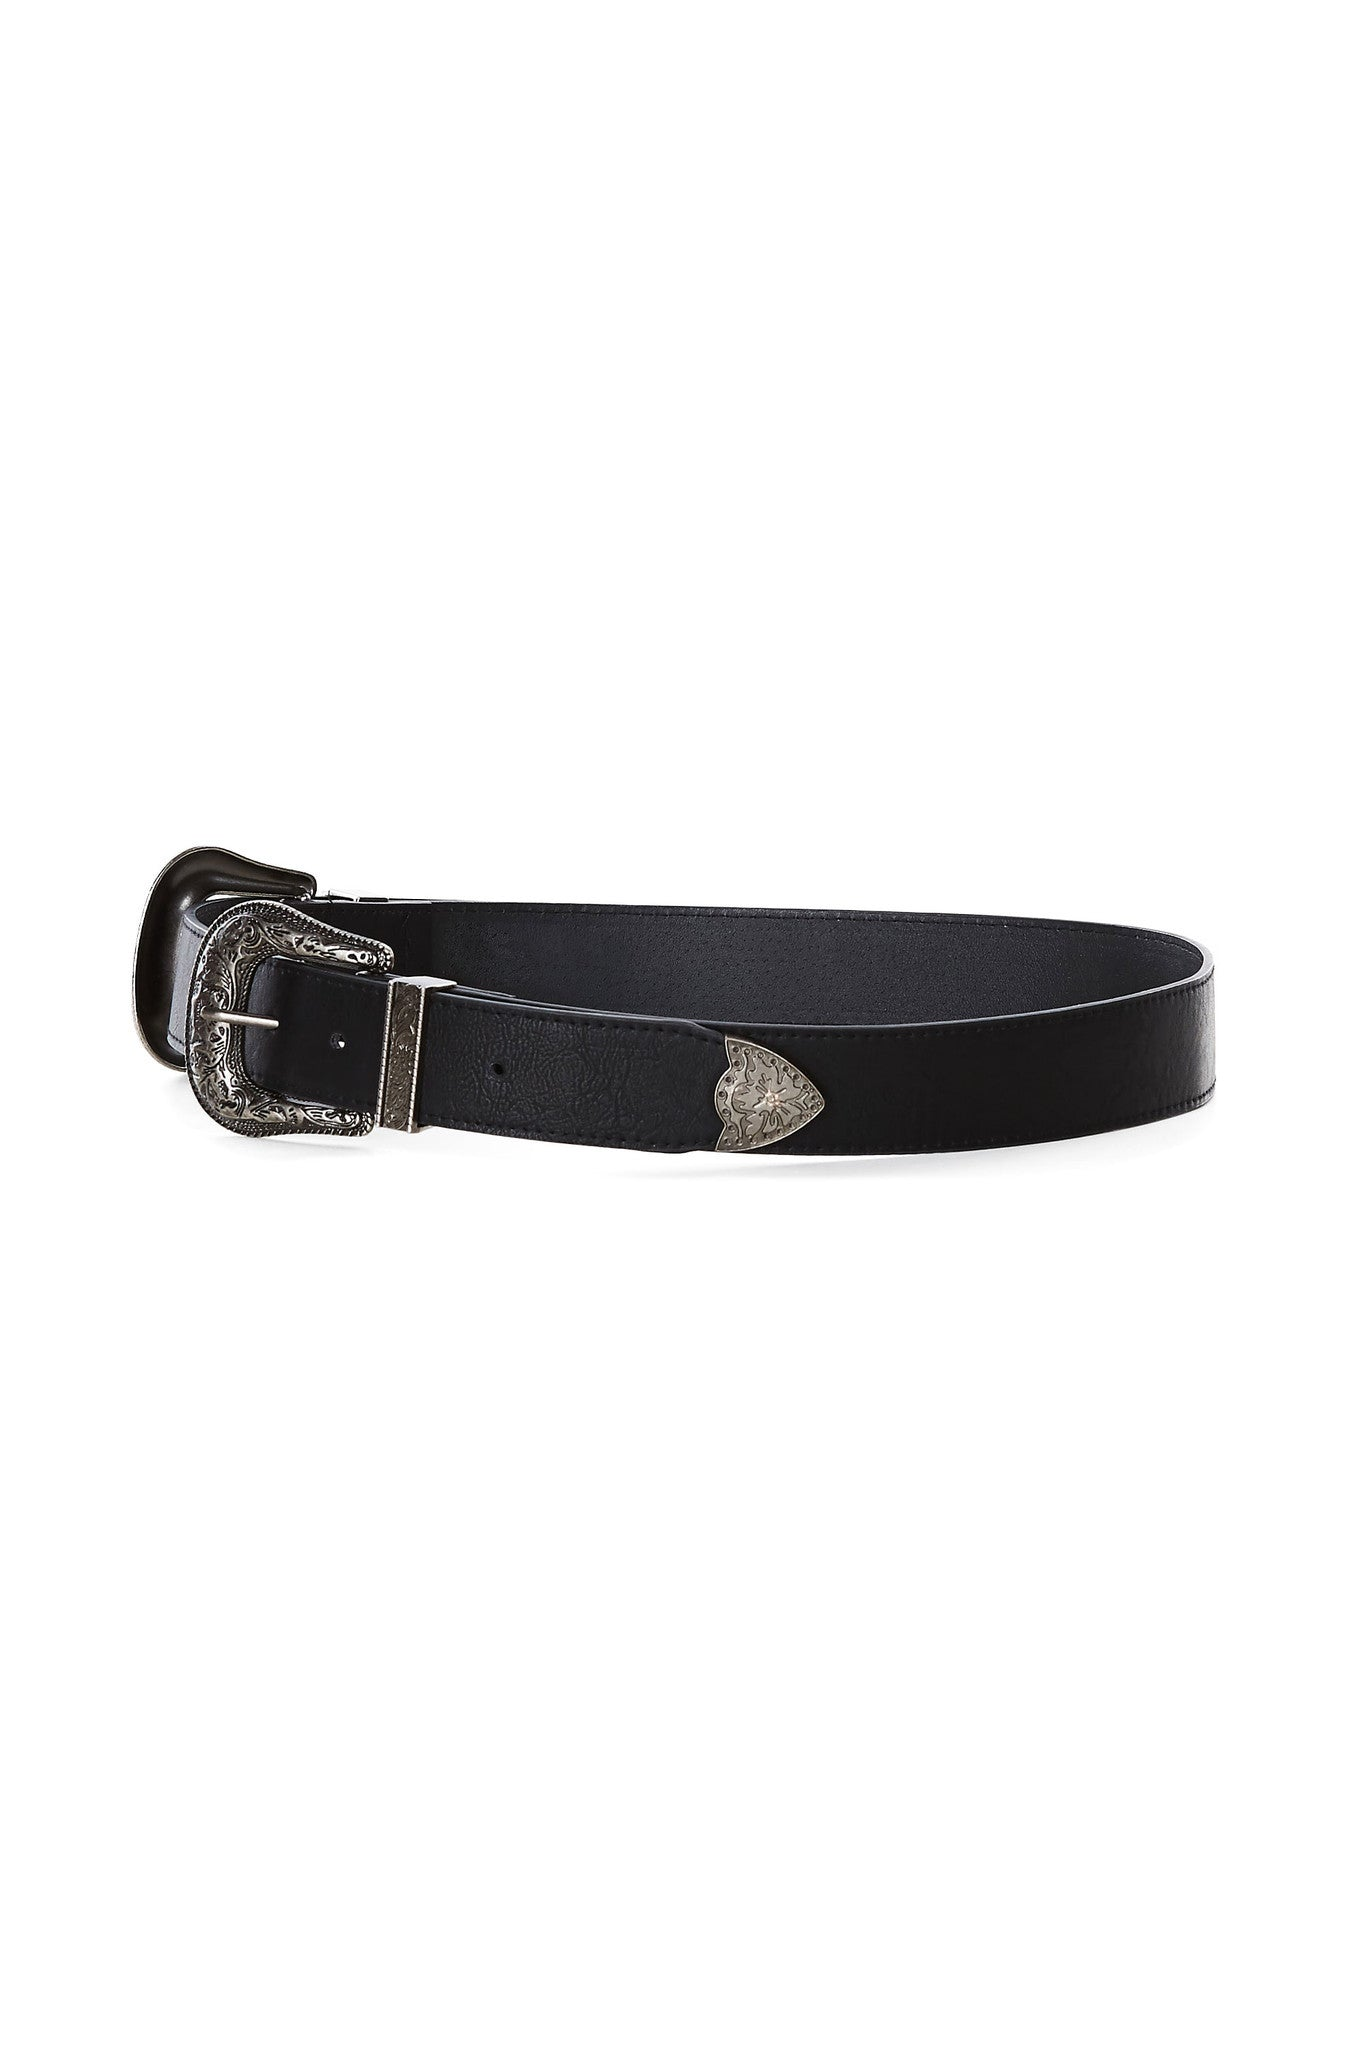 An incredible belt with a western vibe. Vintage style hardware and features two buckles. Such a bold statement piece but so easy to wear!